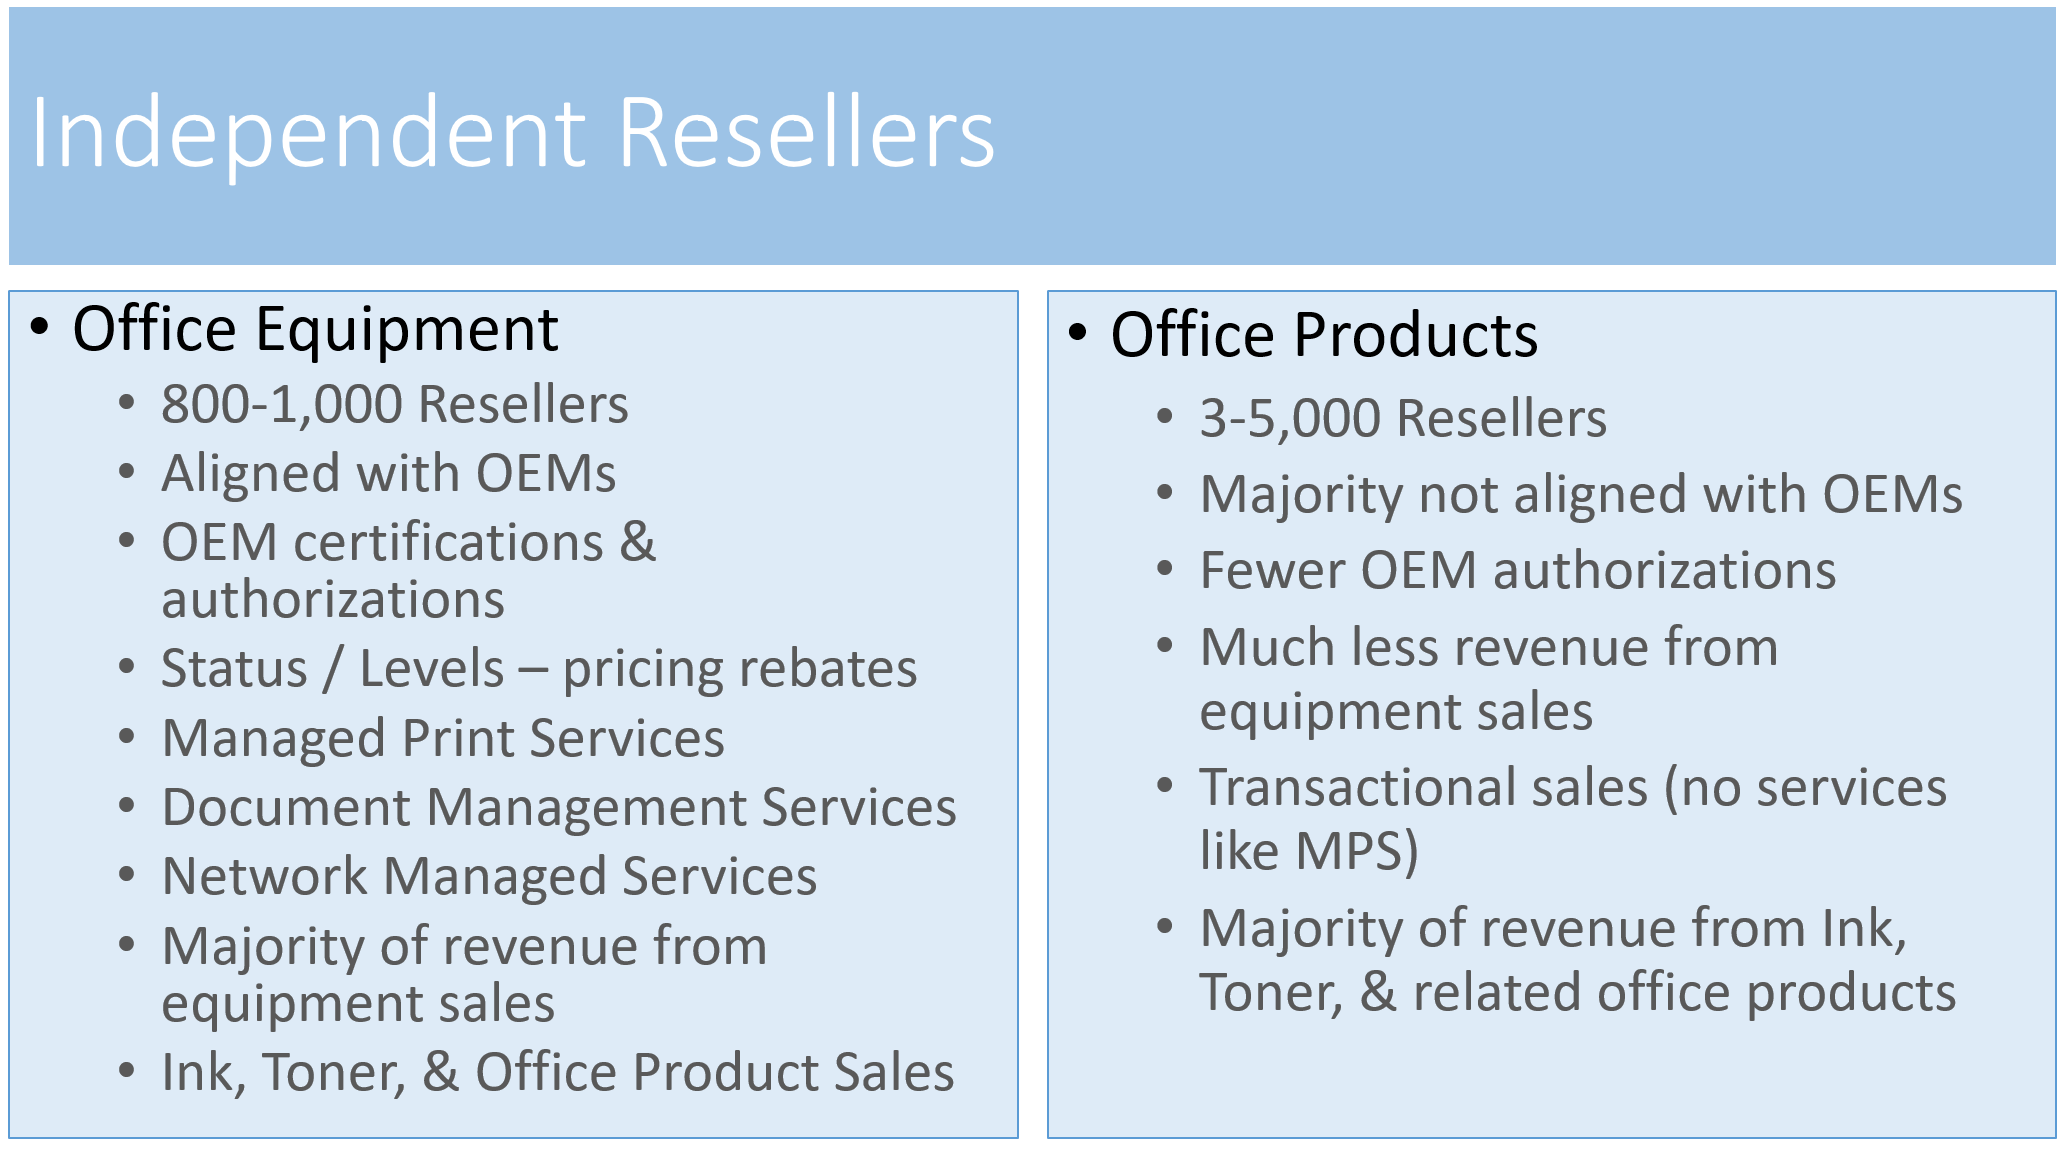 Independent Resellers by Channel